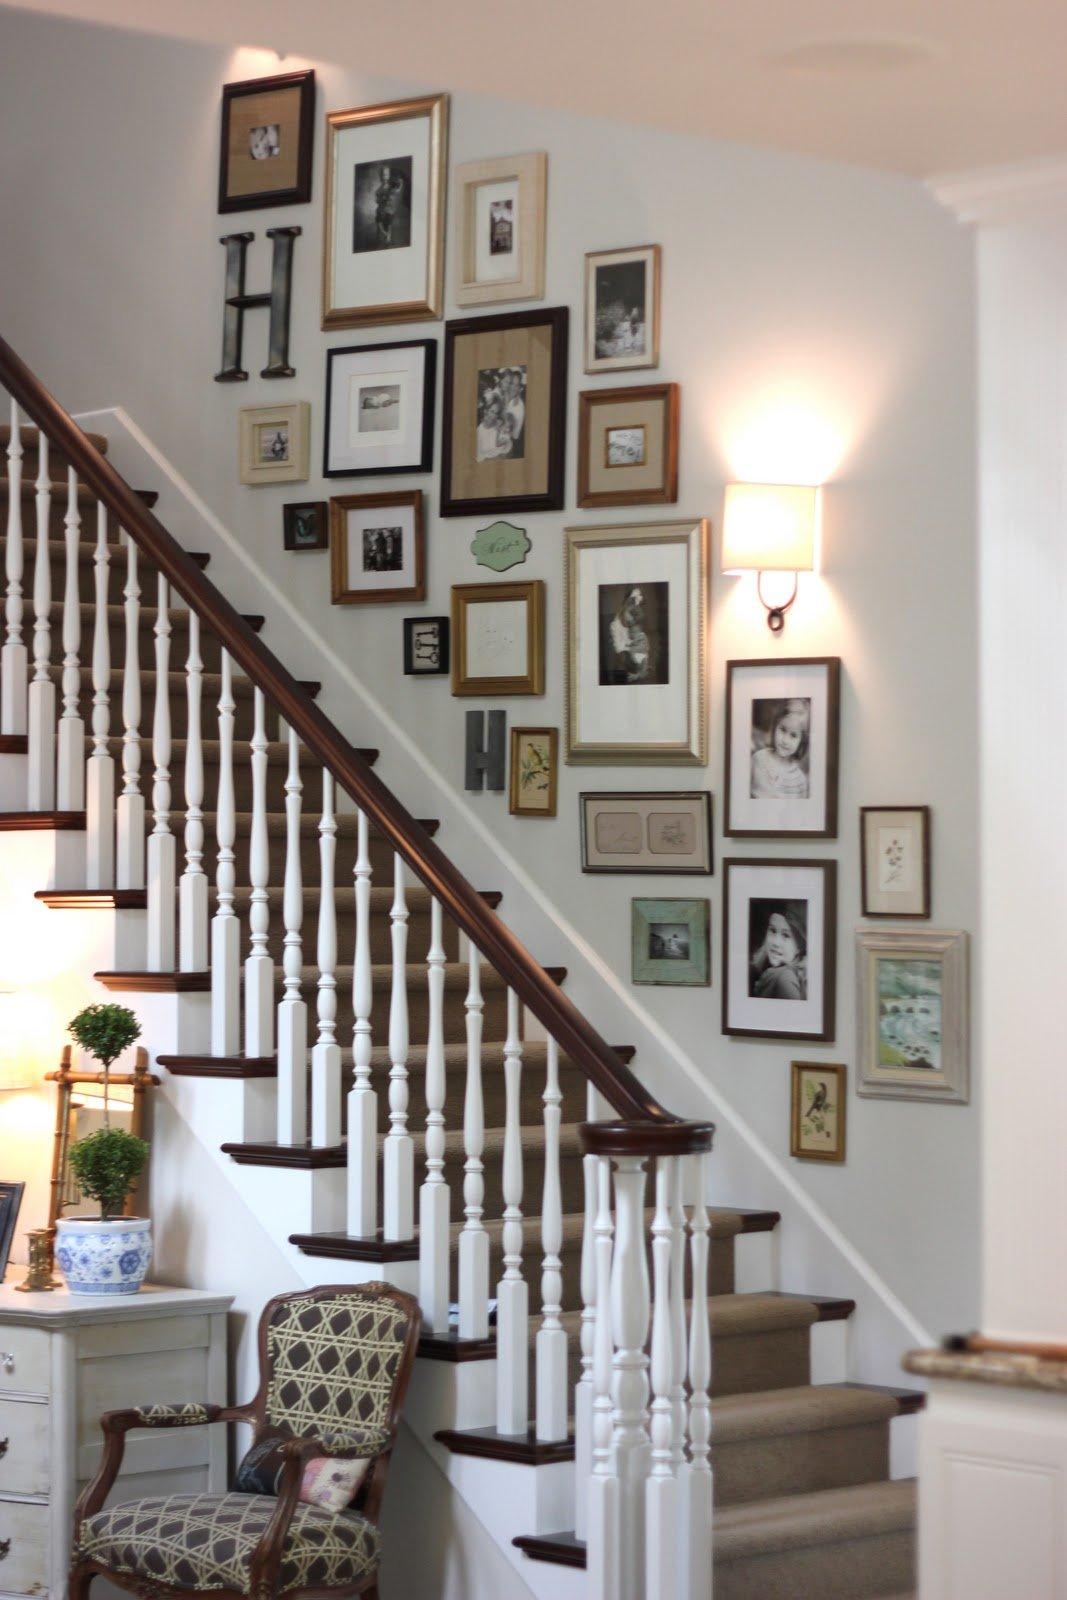 Wall Decor For Stairs : Decorating a staircase ideas inspiration tidbits twine